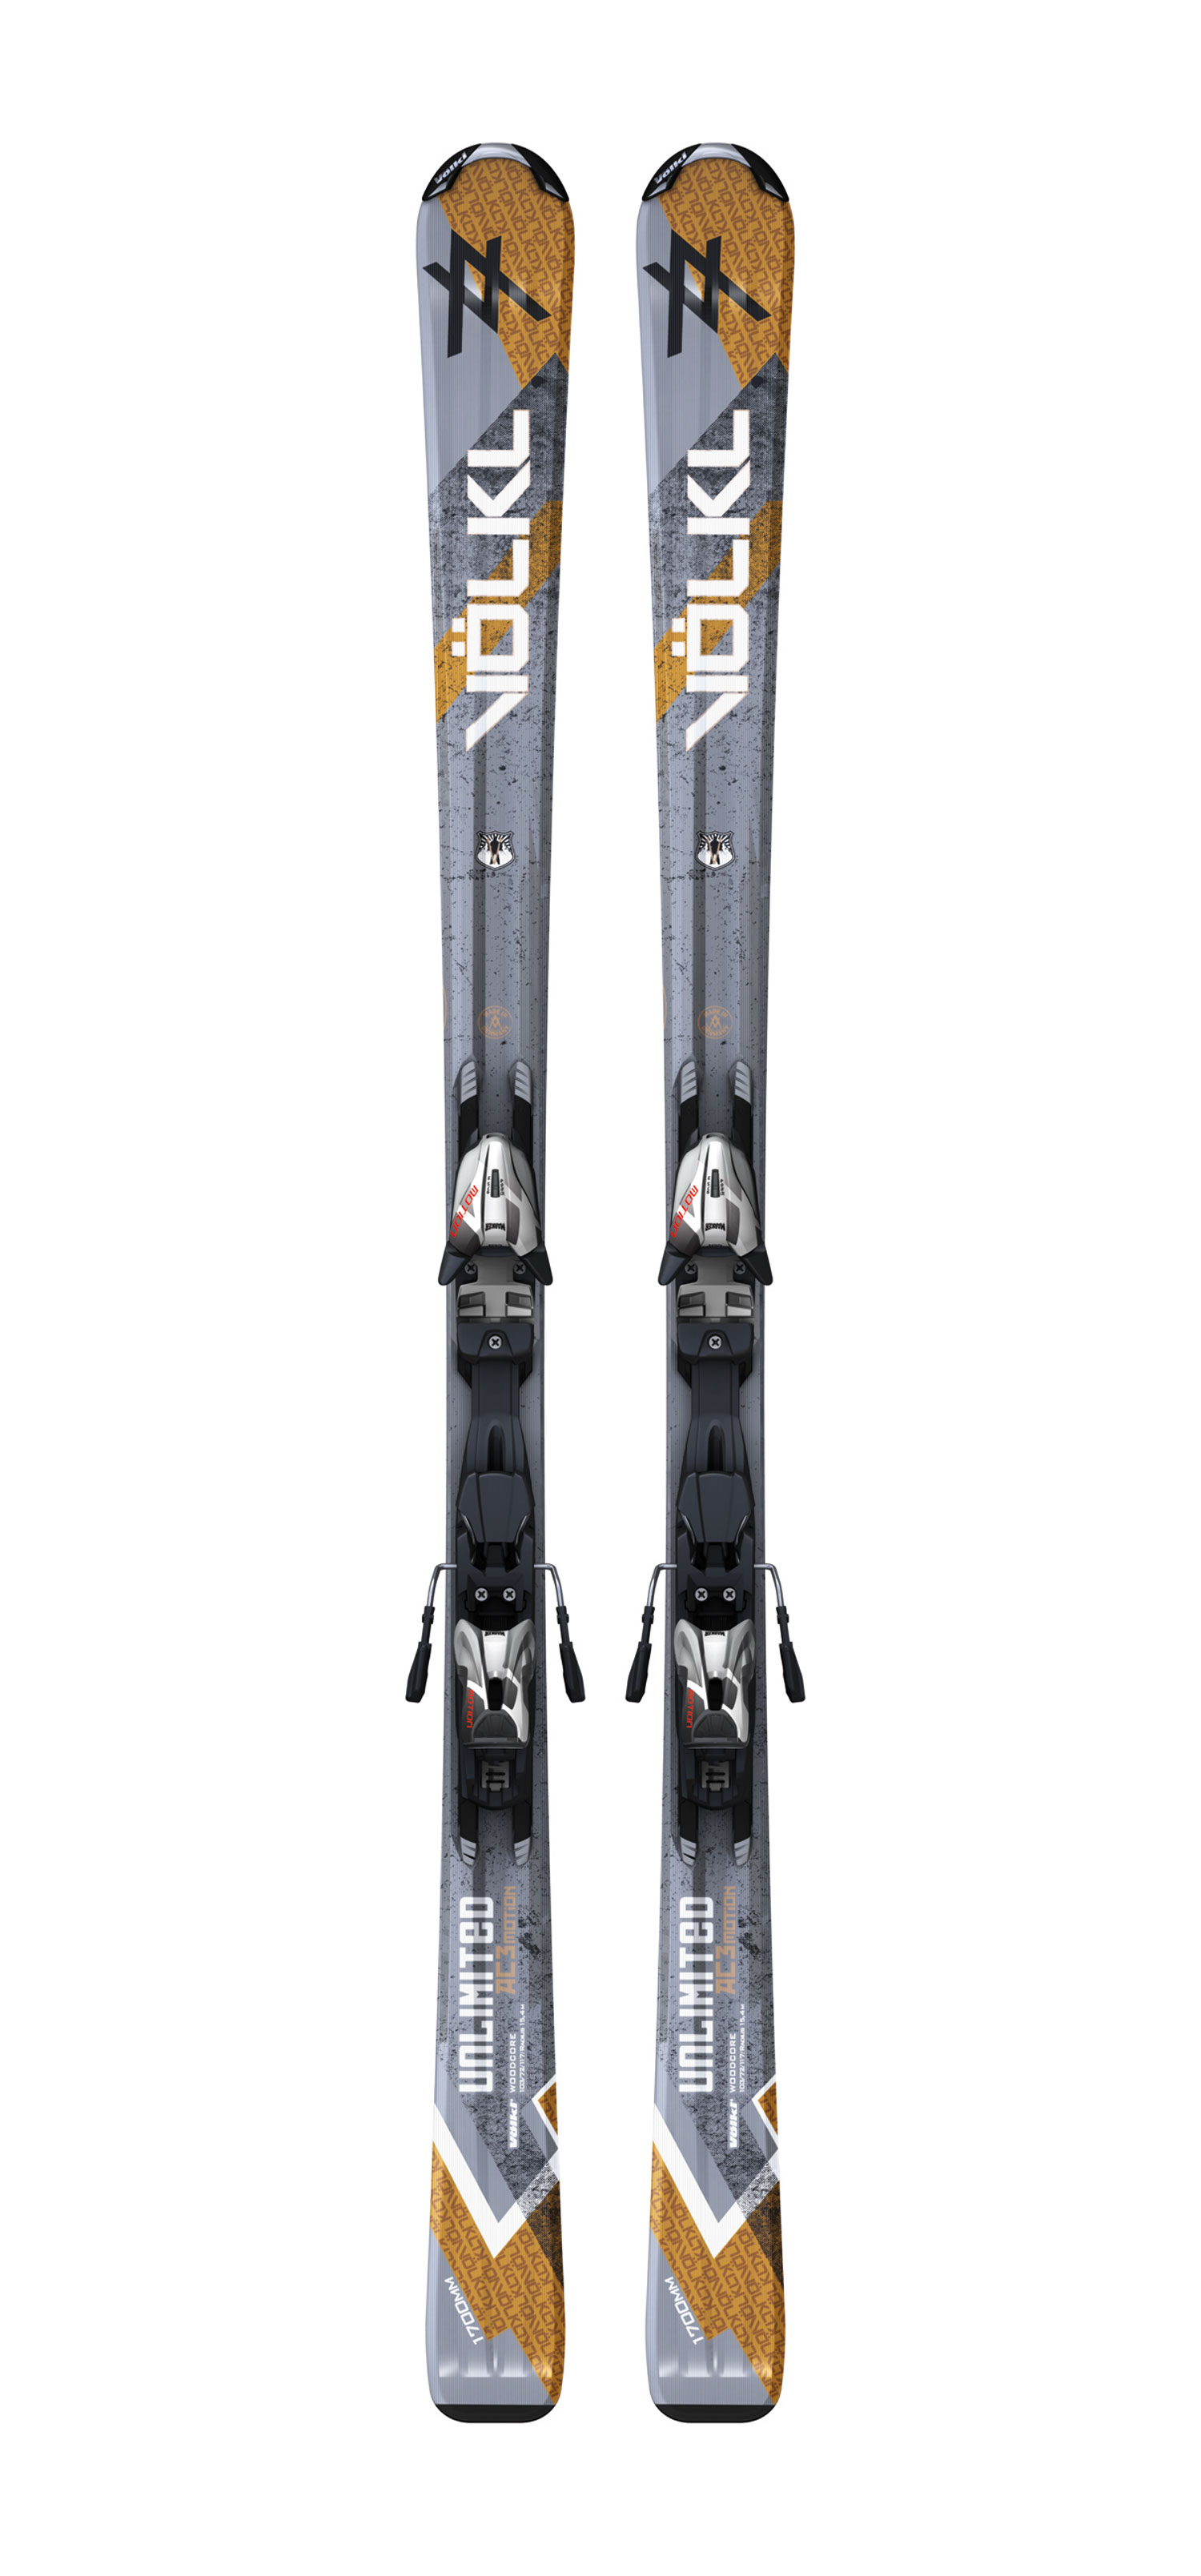 Ski With a new shape of 120-73-105, the re-designed Unlimited AC relies on Progressive Technology to give intermediate skiers effortlessly easy turning and comfort. The AC flows in and out of the turn with ease, but in the middle of the turn the skier feels rock-solid grip.Key Features of the Volkl Unlimited AC Skis w/ Motion LT 10.0 Bindings: Sidecut: 120-73-105 Length(Radius): 153 (12.0), 159 (12.9),166 (14.3), 173 (15.8) Composite Core Double Grip LT Motion LT 10.0 Bindings - $355.95